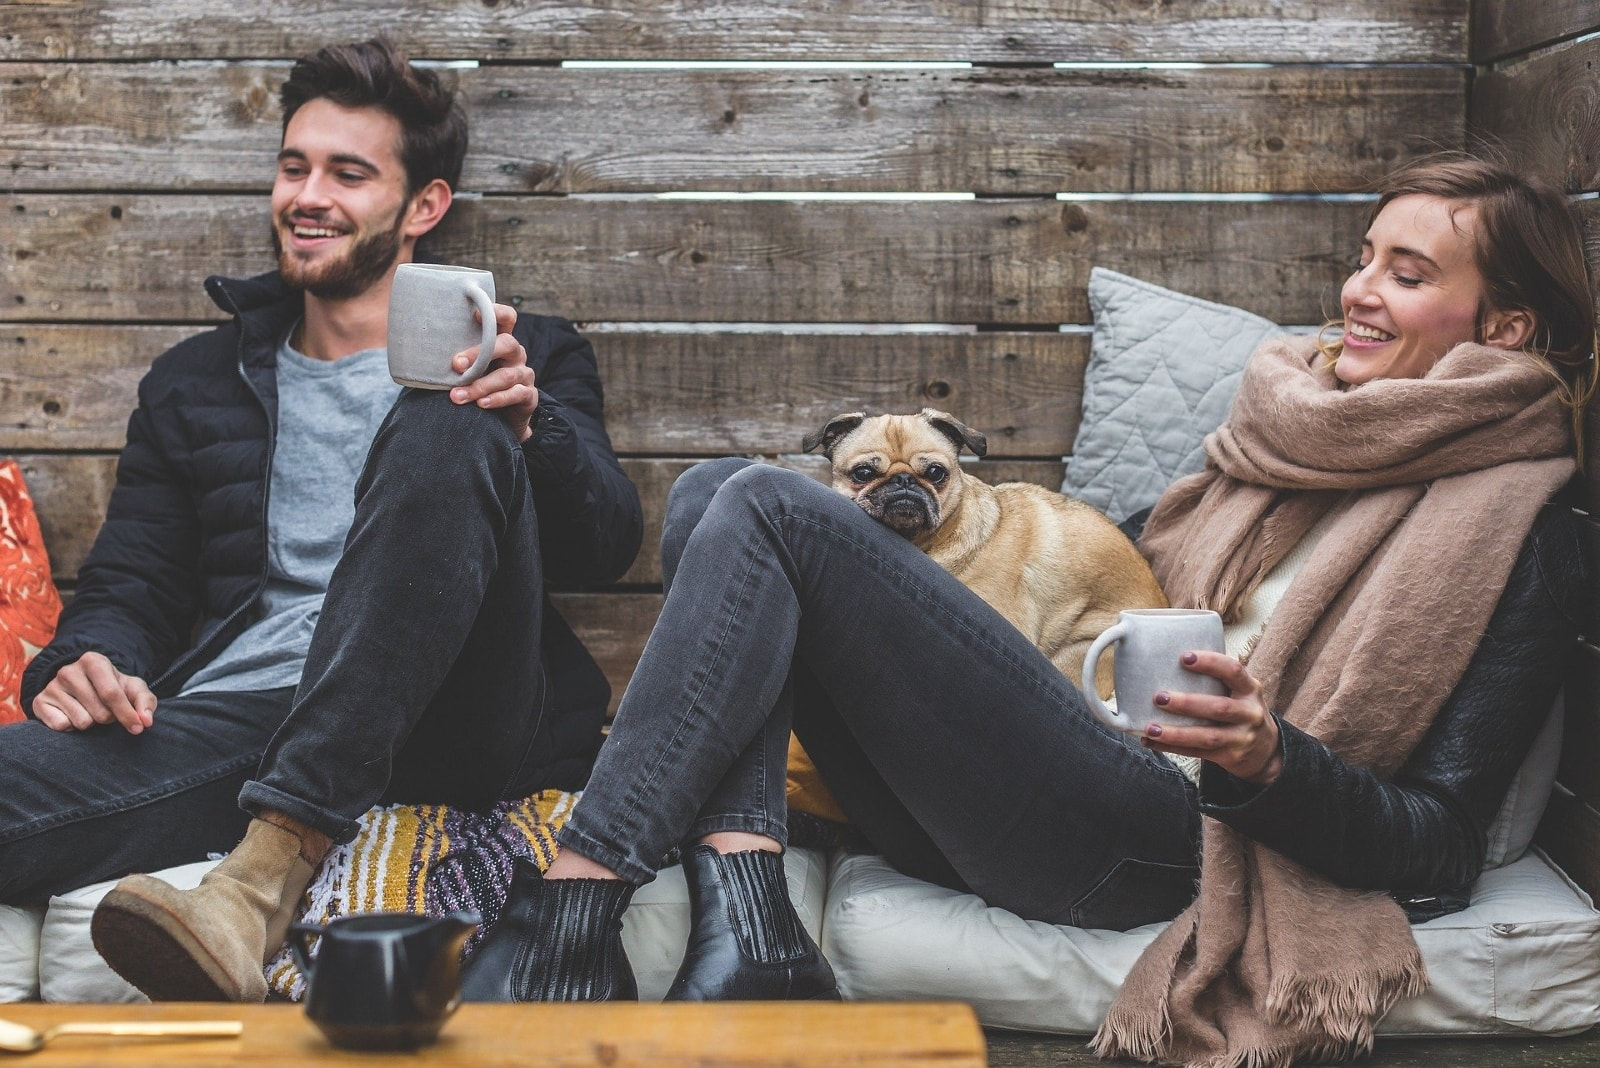 man and woman holding mugs while sitting near dog